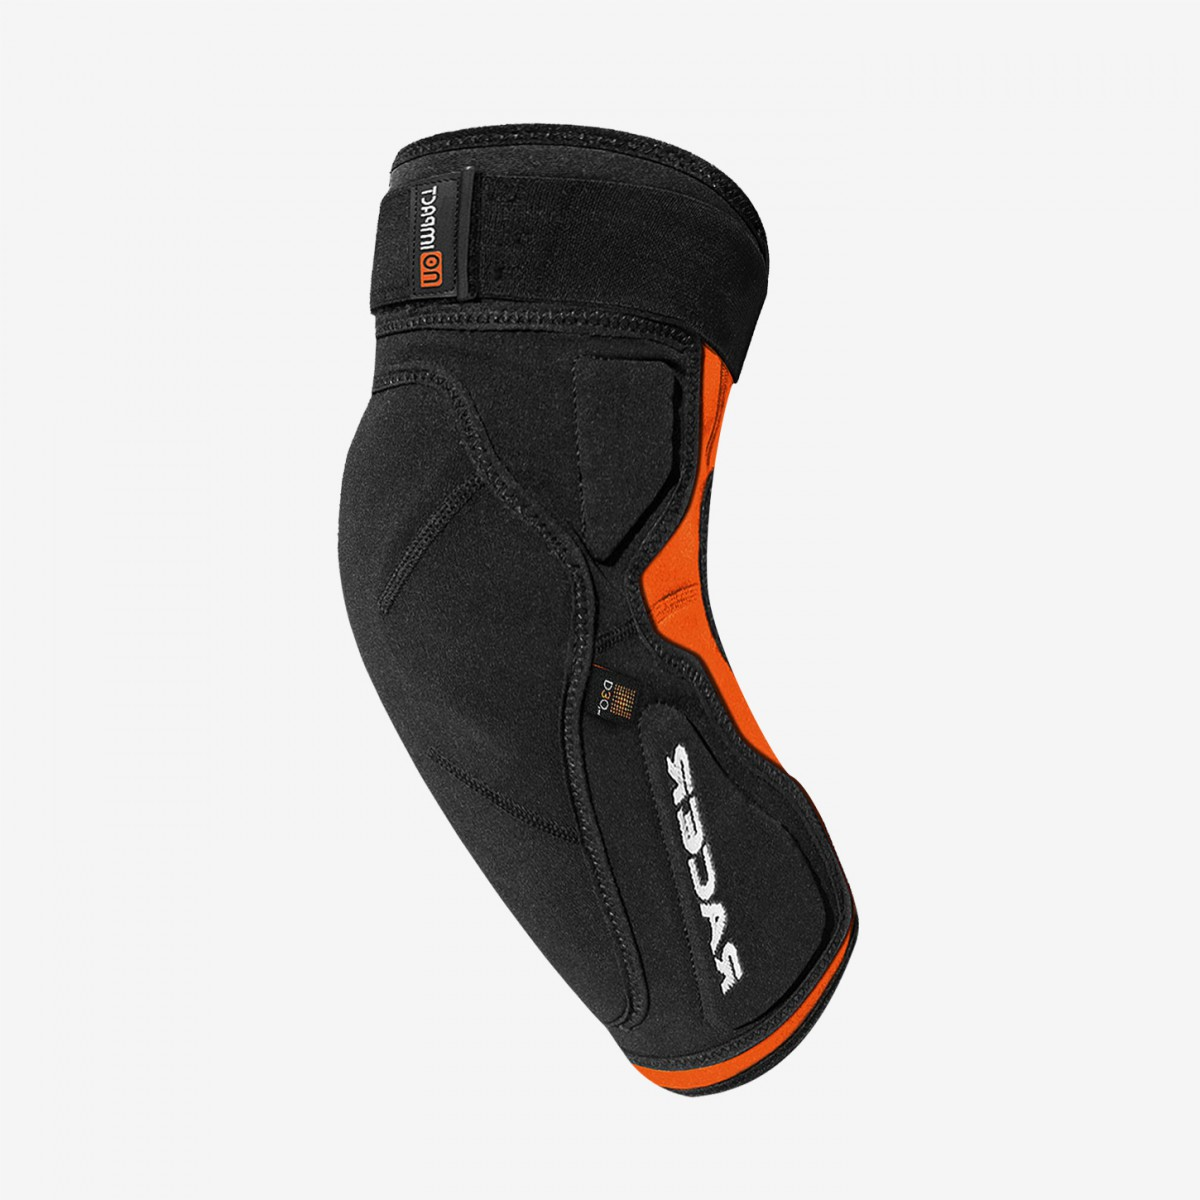 bike_protections___racer_elbow_guard_profile_elbow